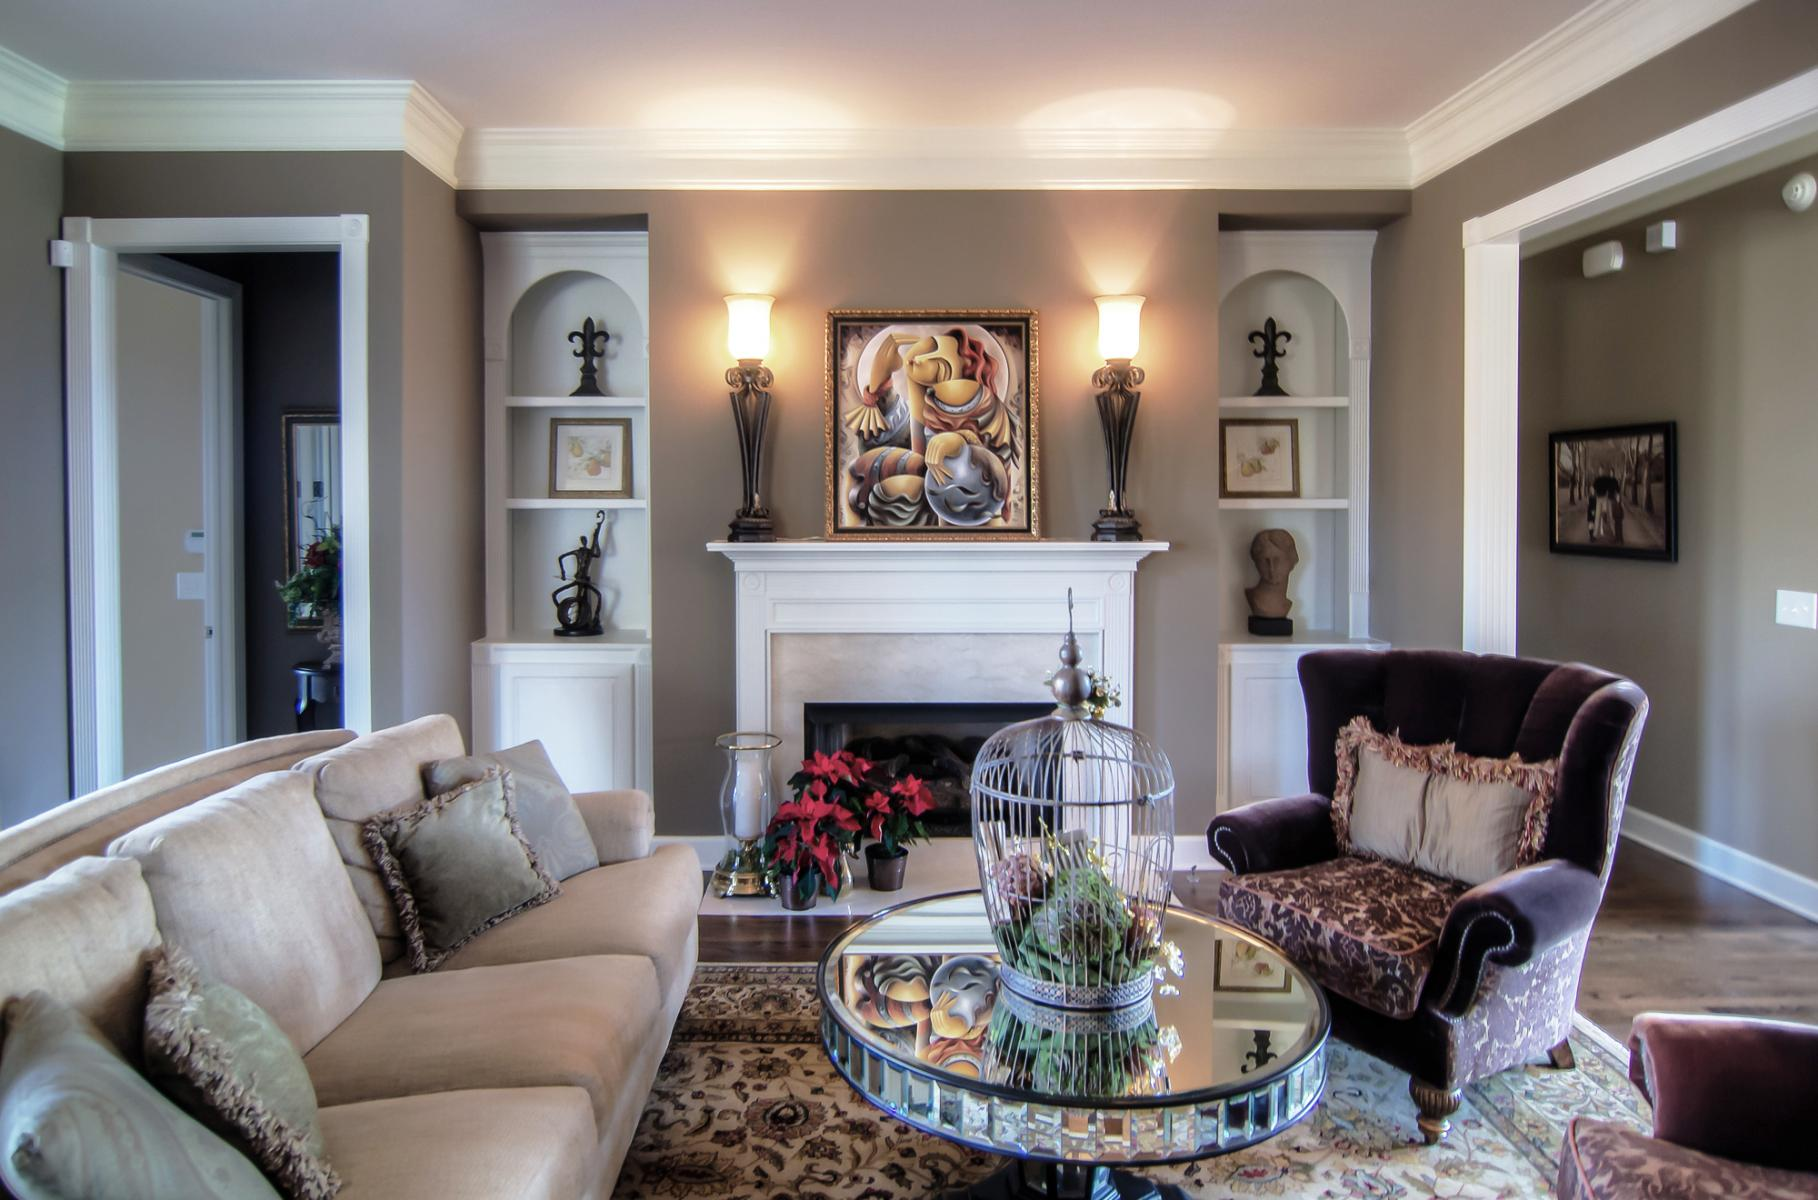 Let us help you choose your rooms perfect color.